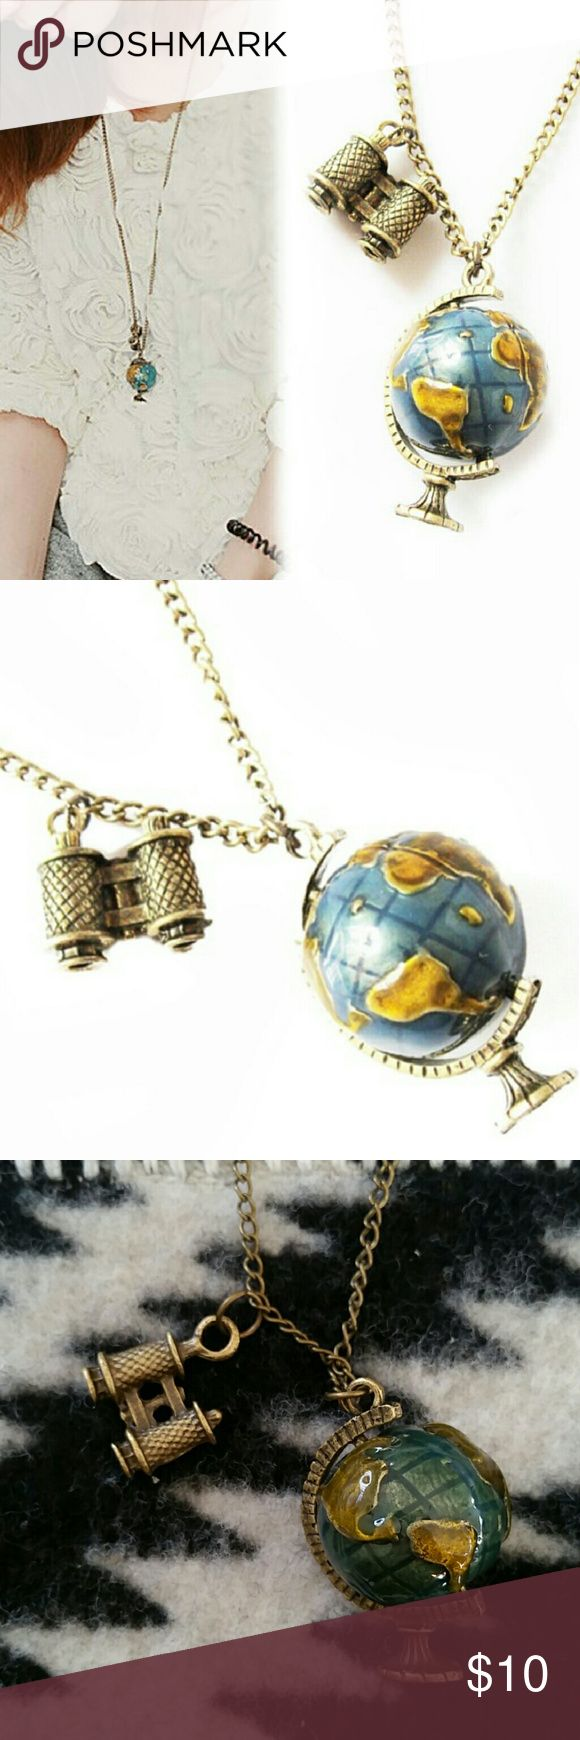 "ModCloth 3D Globe and Binocular Travel Necklace Cute 3D globe and binocular charm necklace on a 24"" bronze chain. Perfect for the globetrotter traveler. NWOT. Modcloth Jewelry Necklaces"